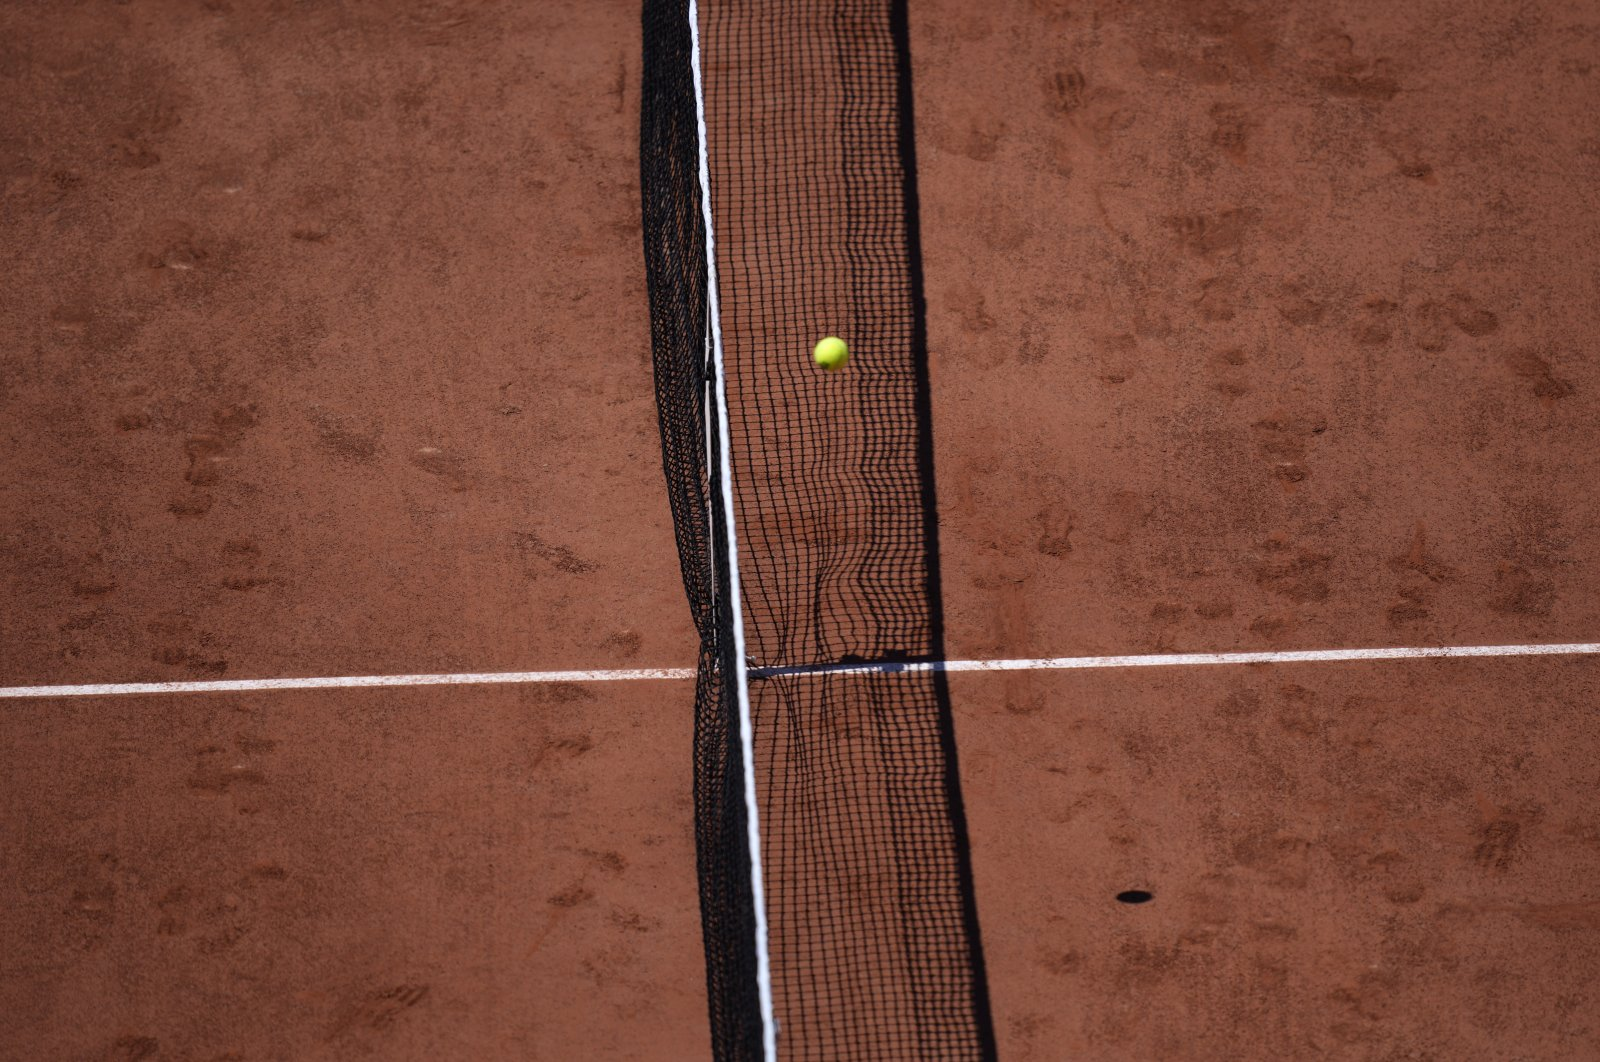 The ball passes over the net during a French Open tennis match at the Roland Garros stadium, Paris, France, May 30, 2021.(AP Photo)